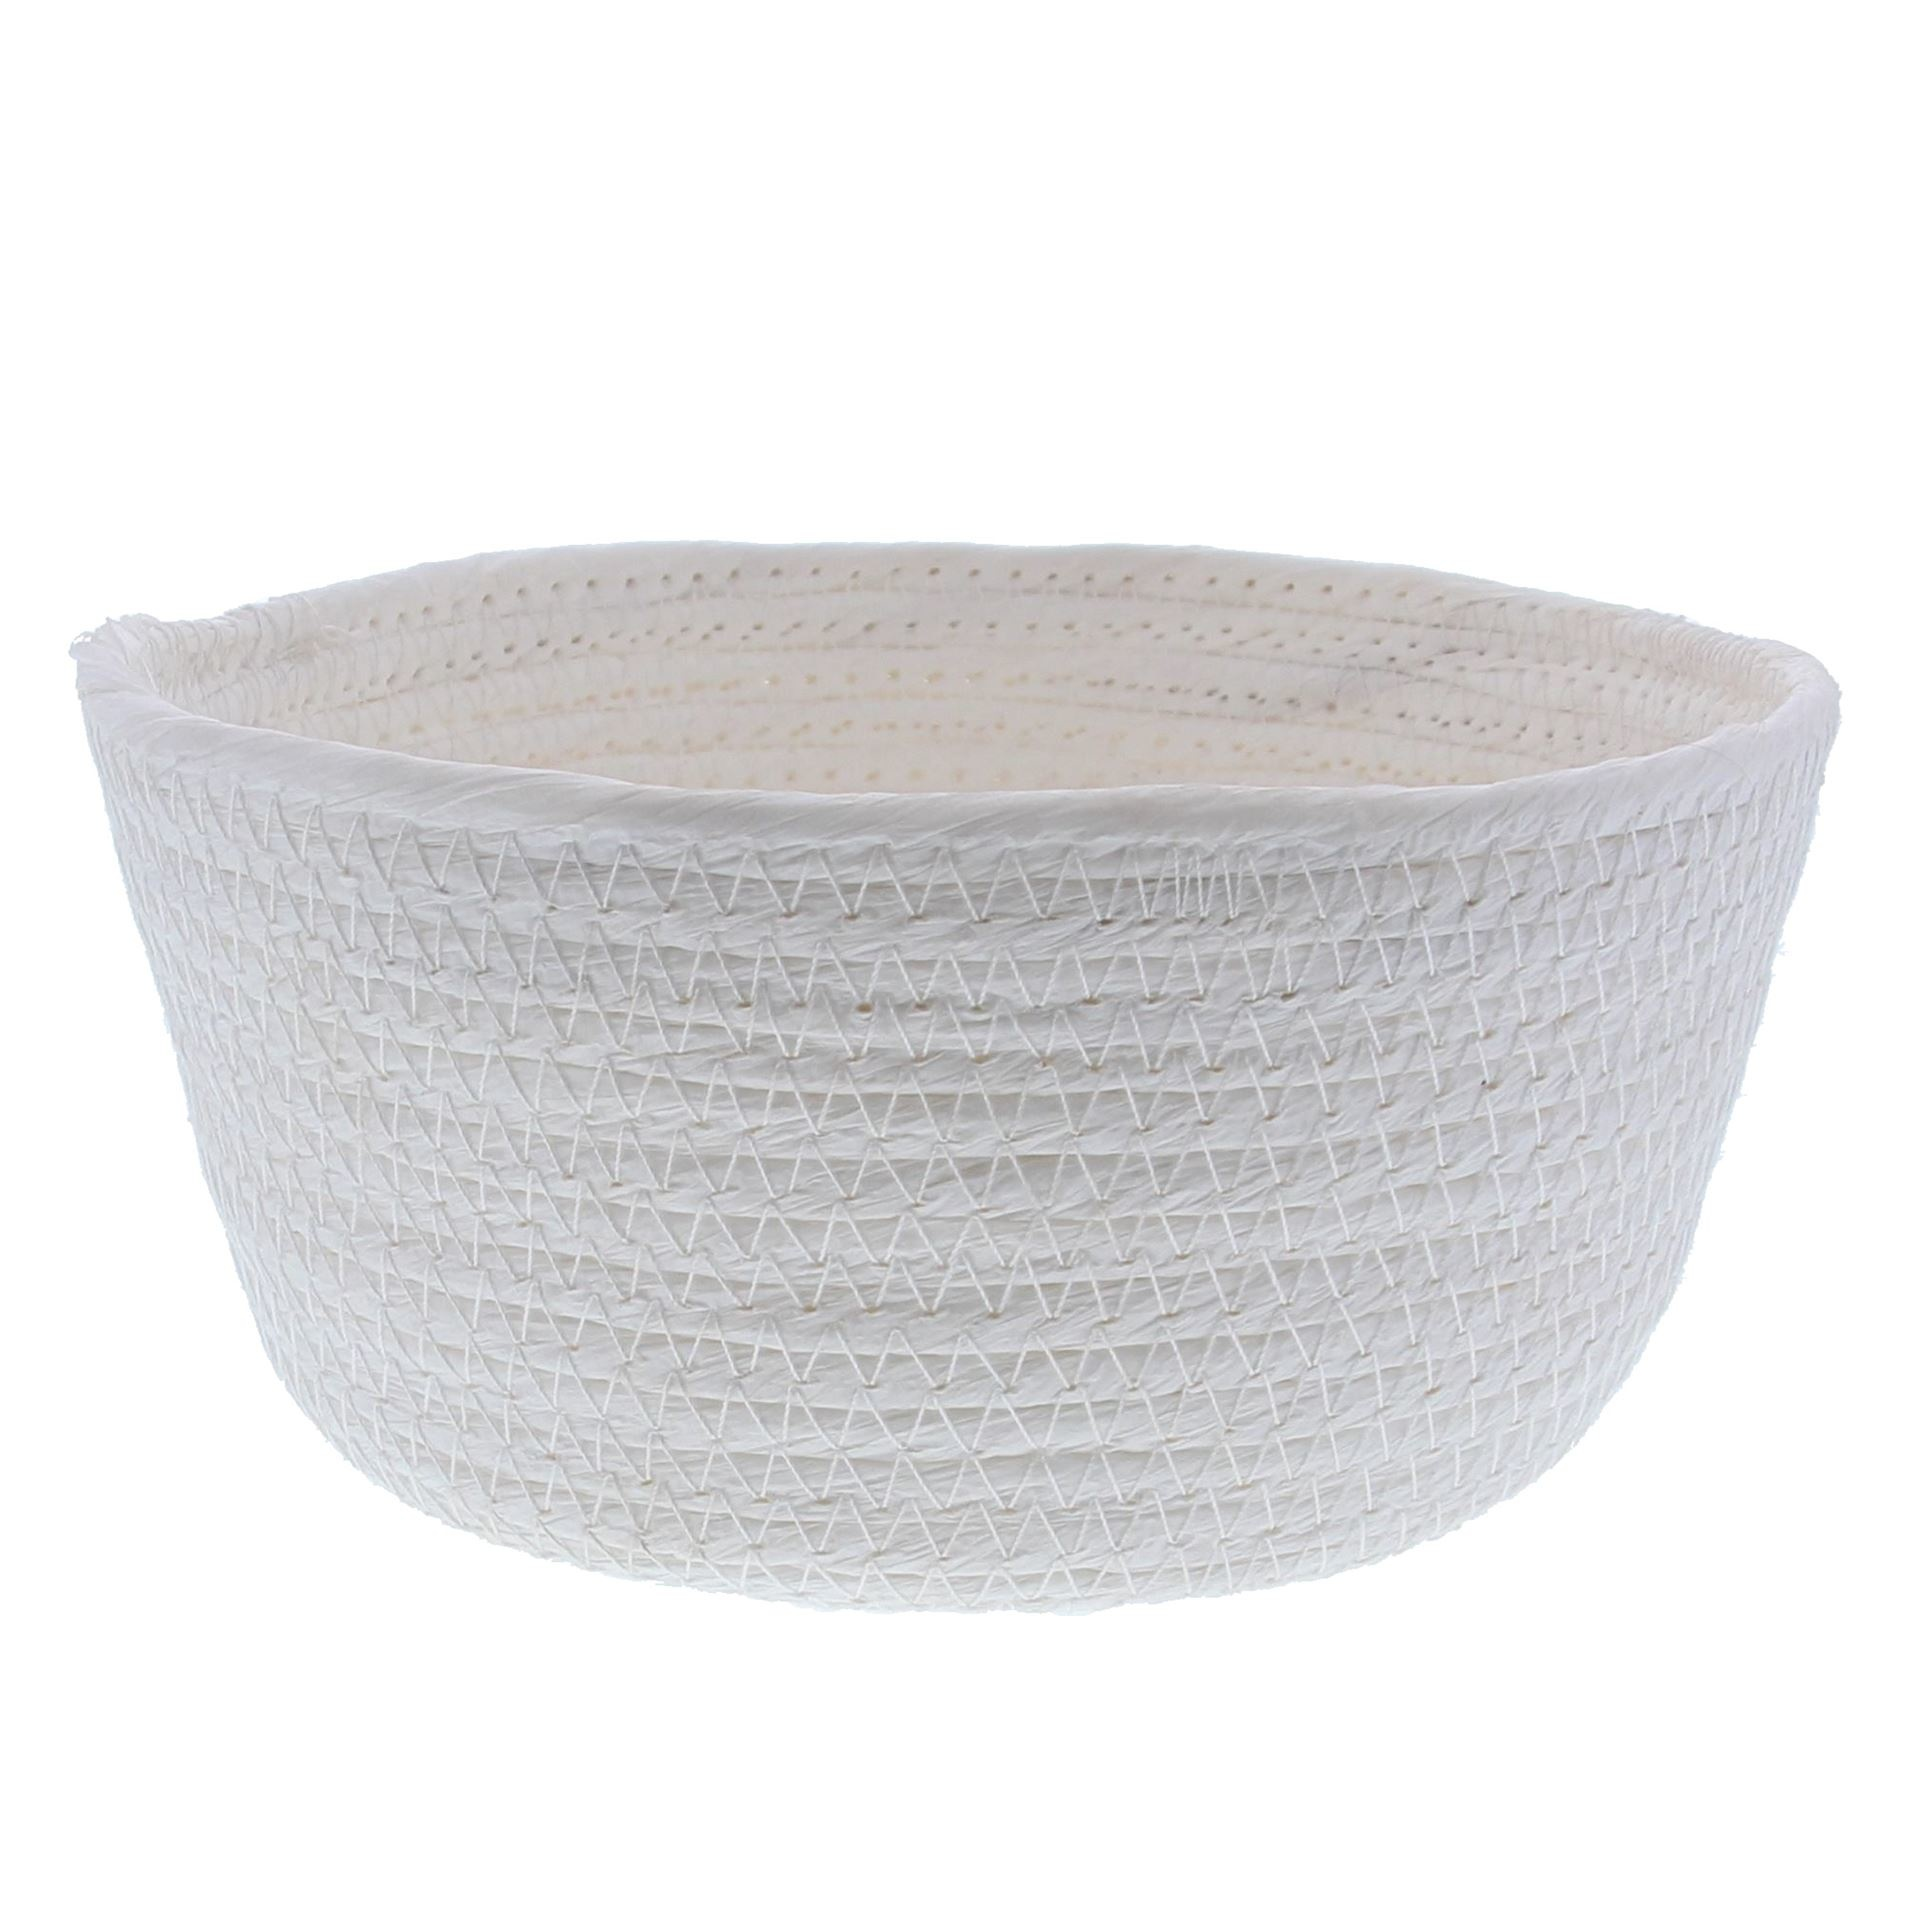 Round Paper rope basket - white - 10 pieces